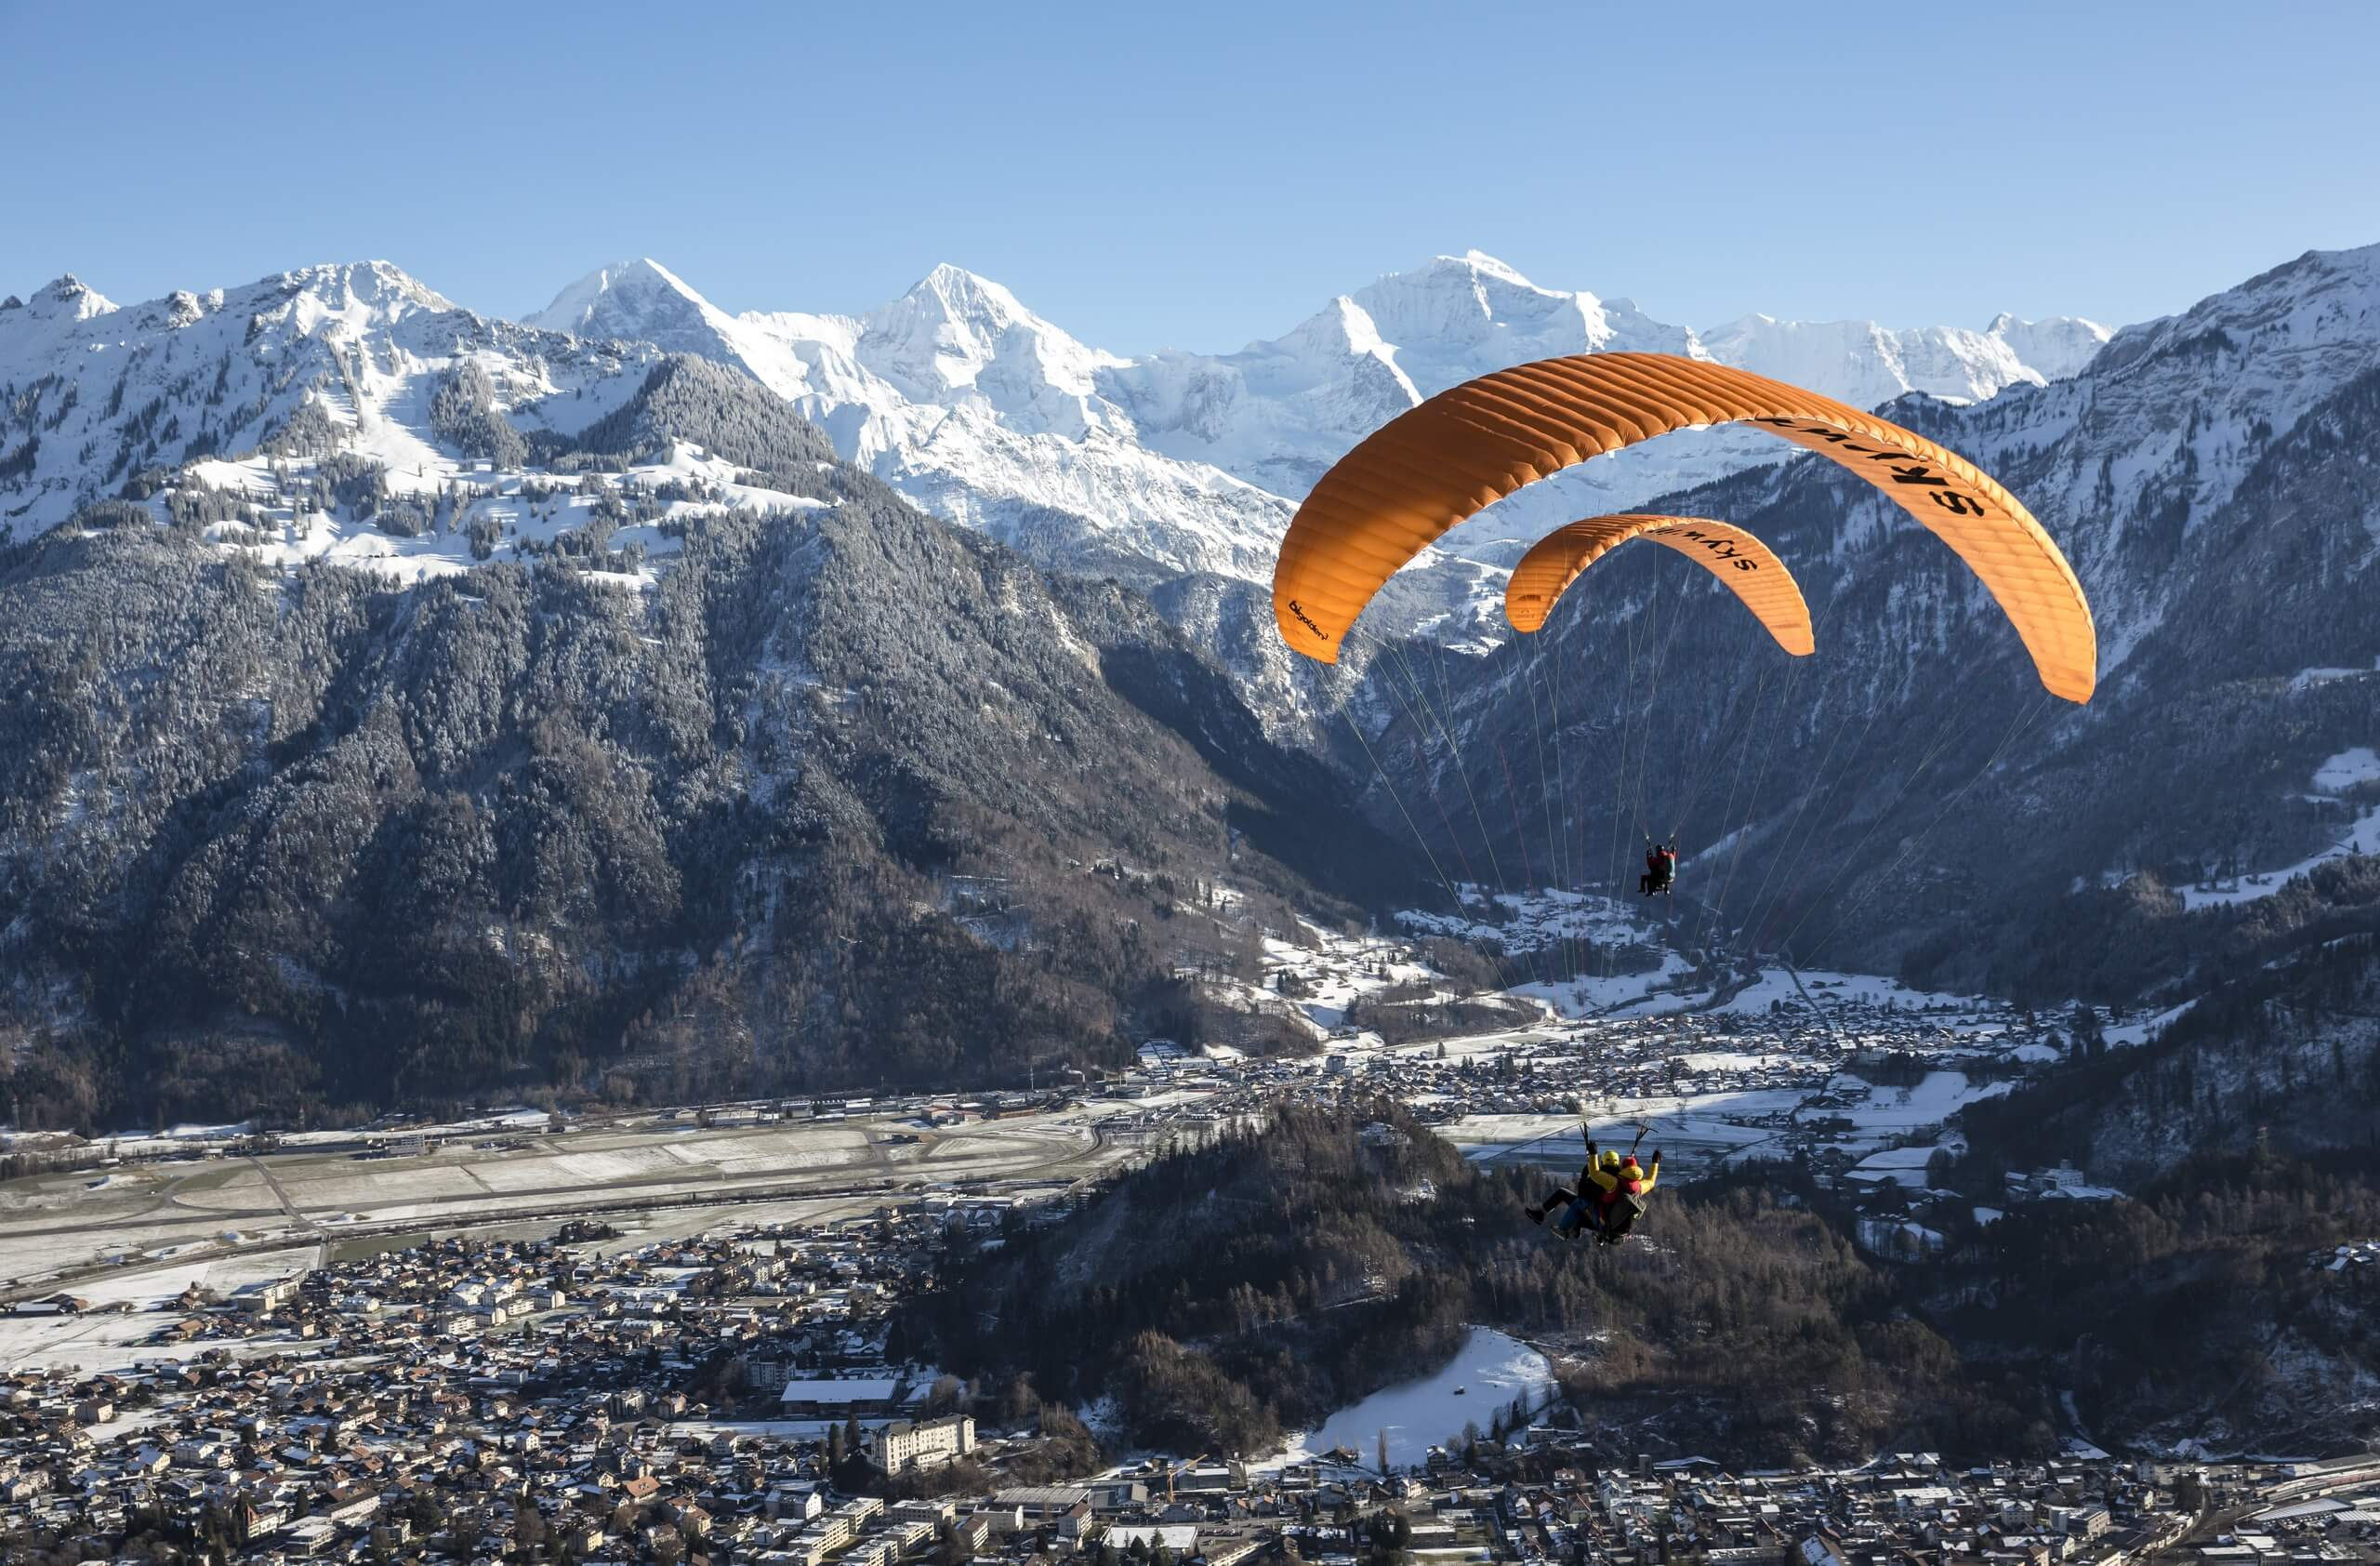 skywings-paragliding-interlaken-winter-mountains-snow-jungfrau